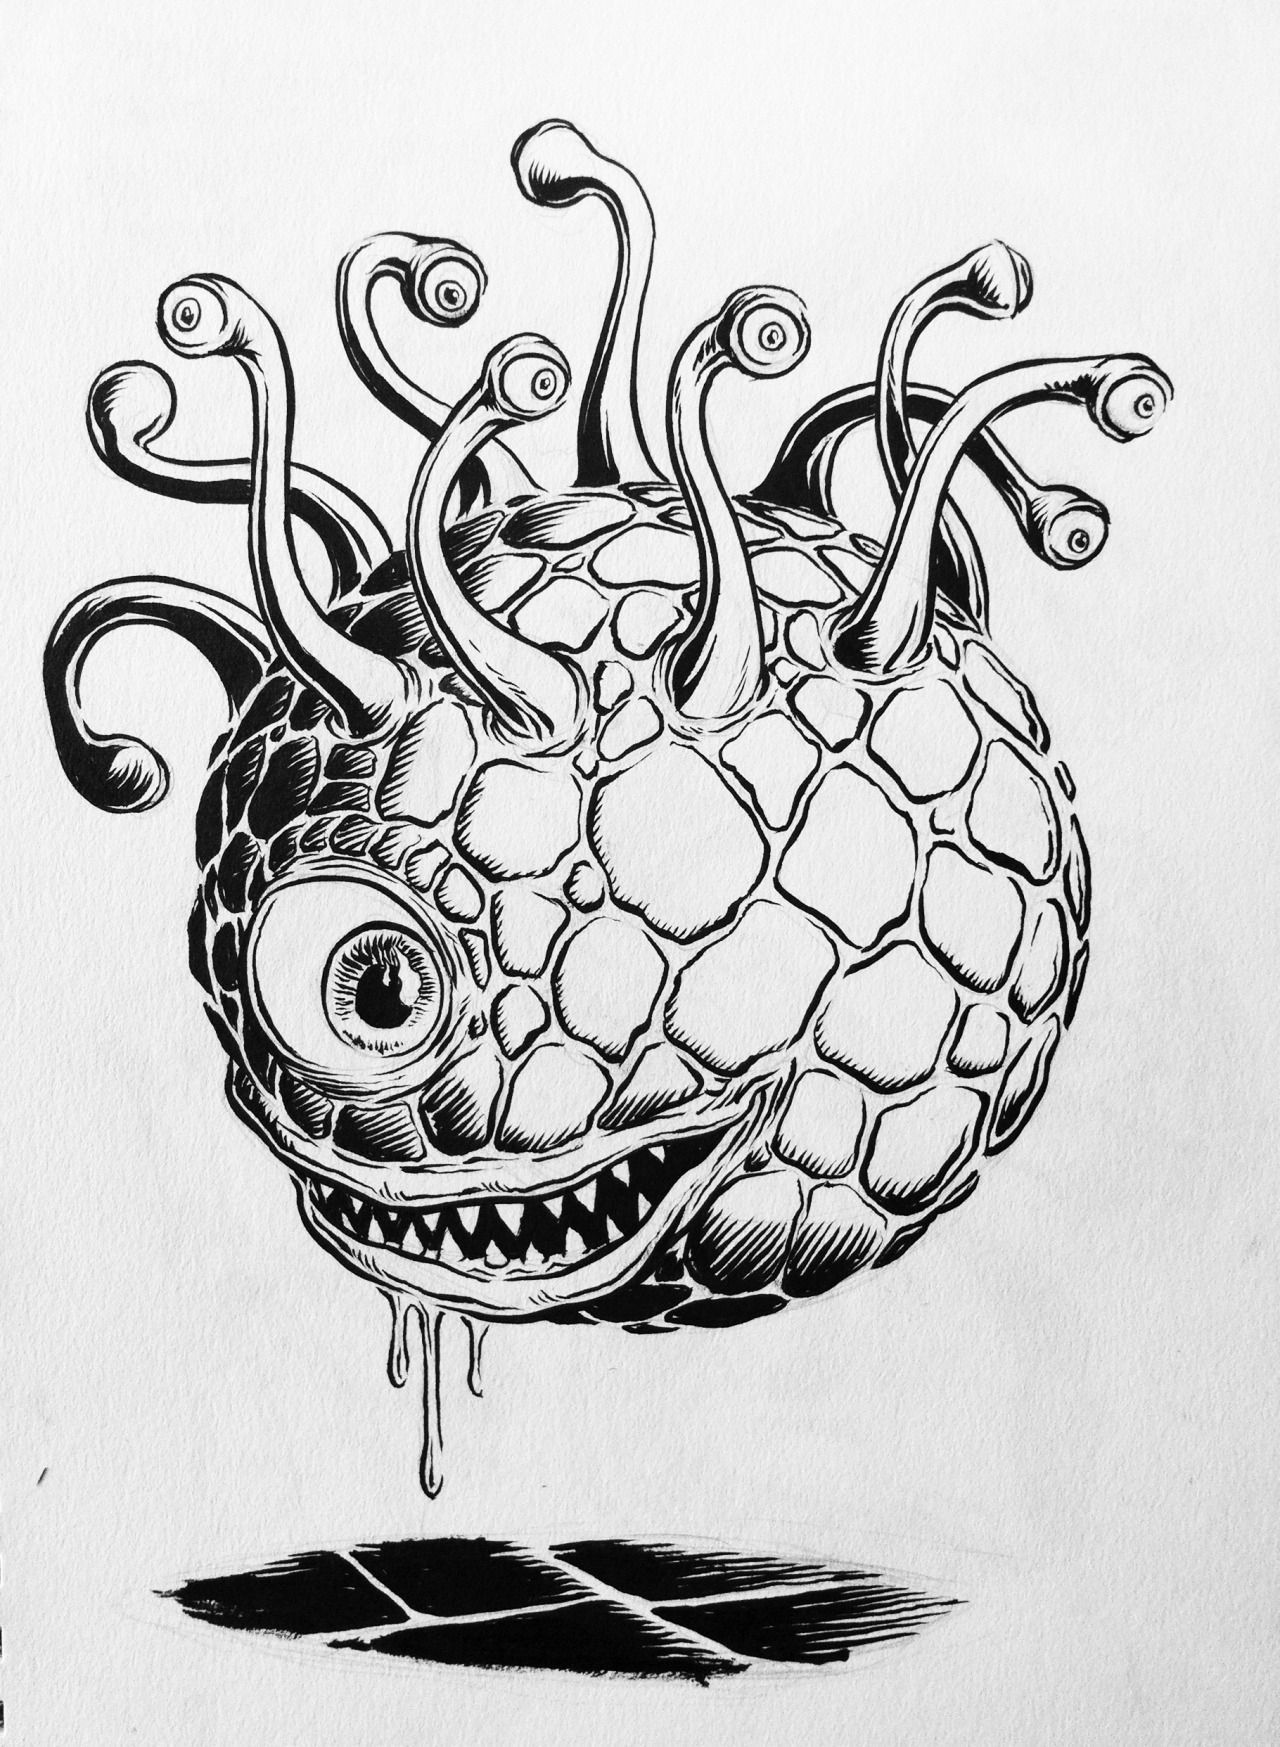 Sketch for sale - Beholder! Click here to purchase.